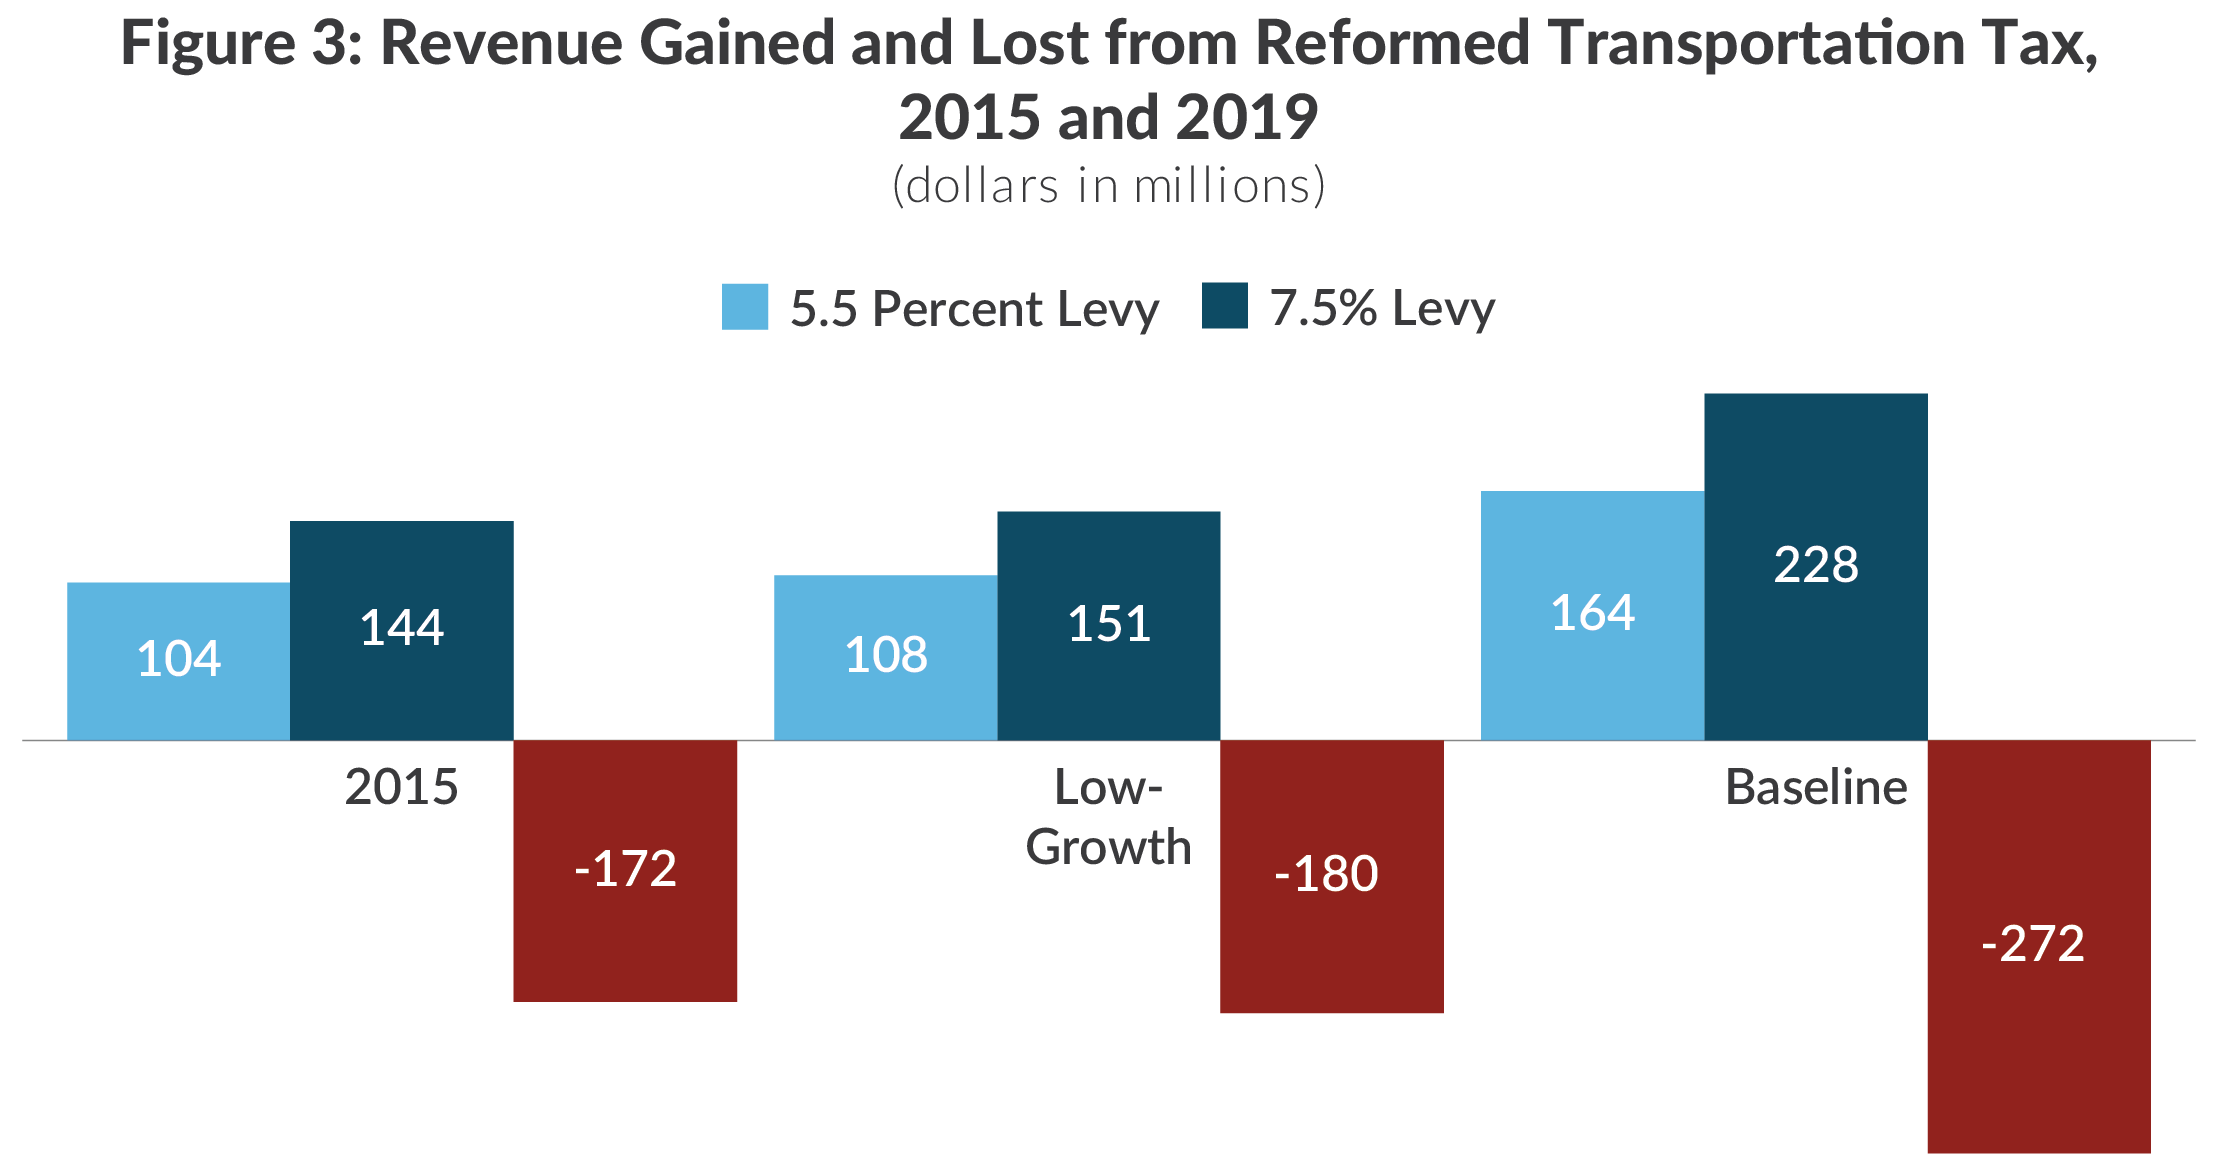 Grouped column chart showing revenue gained and lost from reformed transportation sales tax in New York State, 2015 and 2019